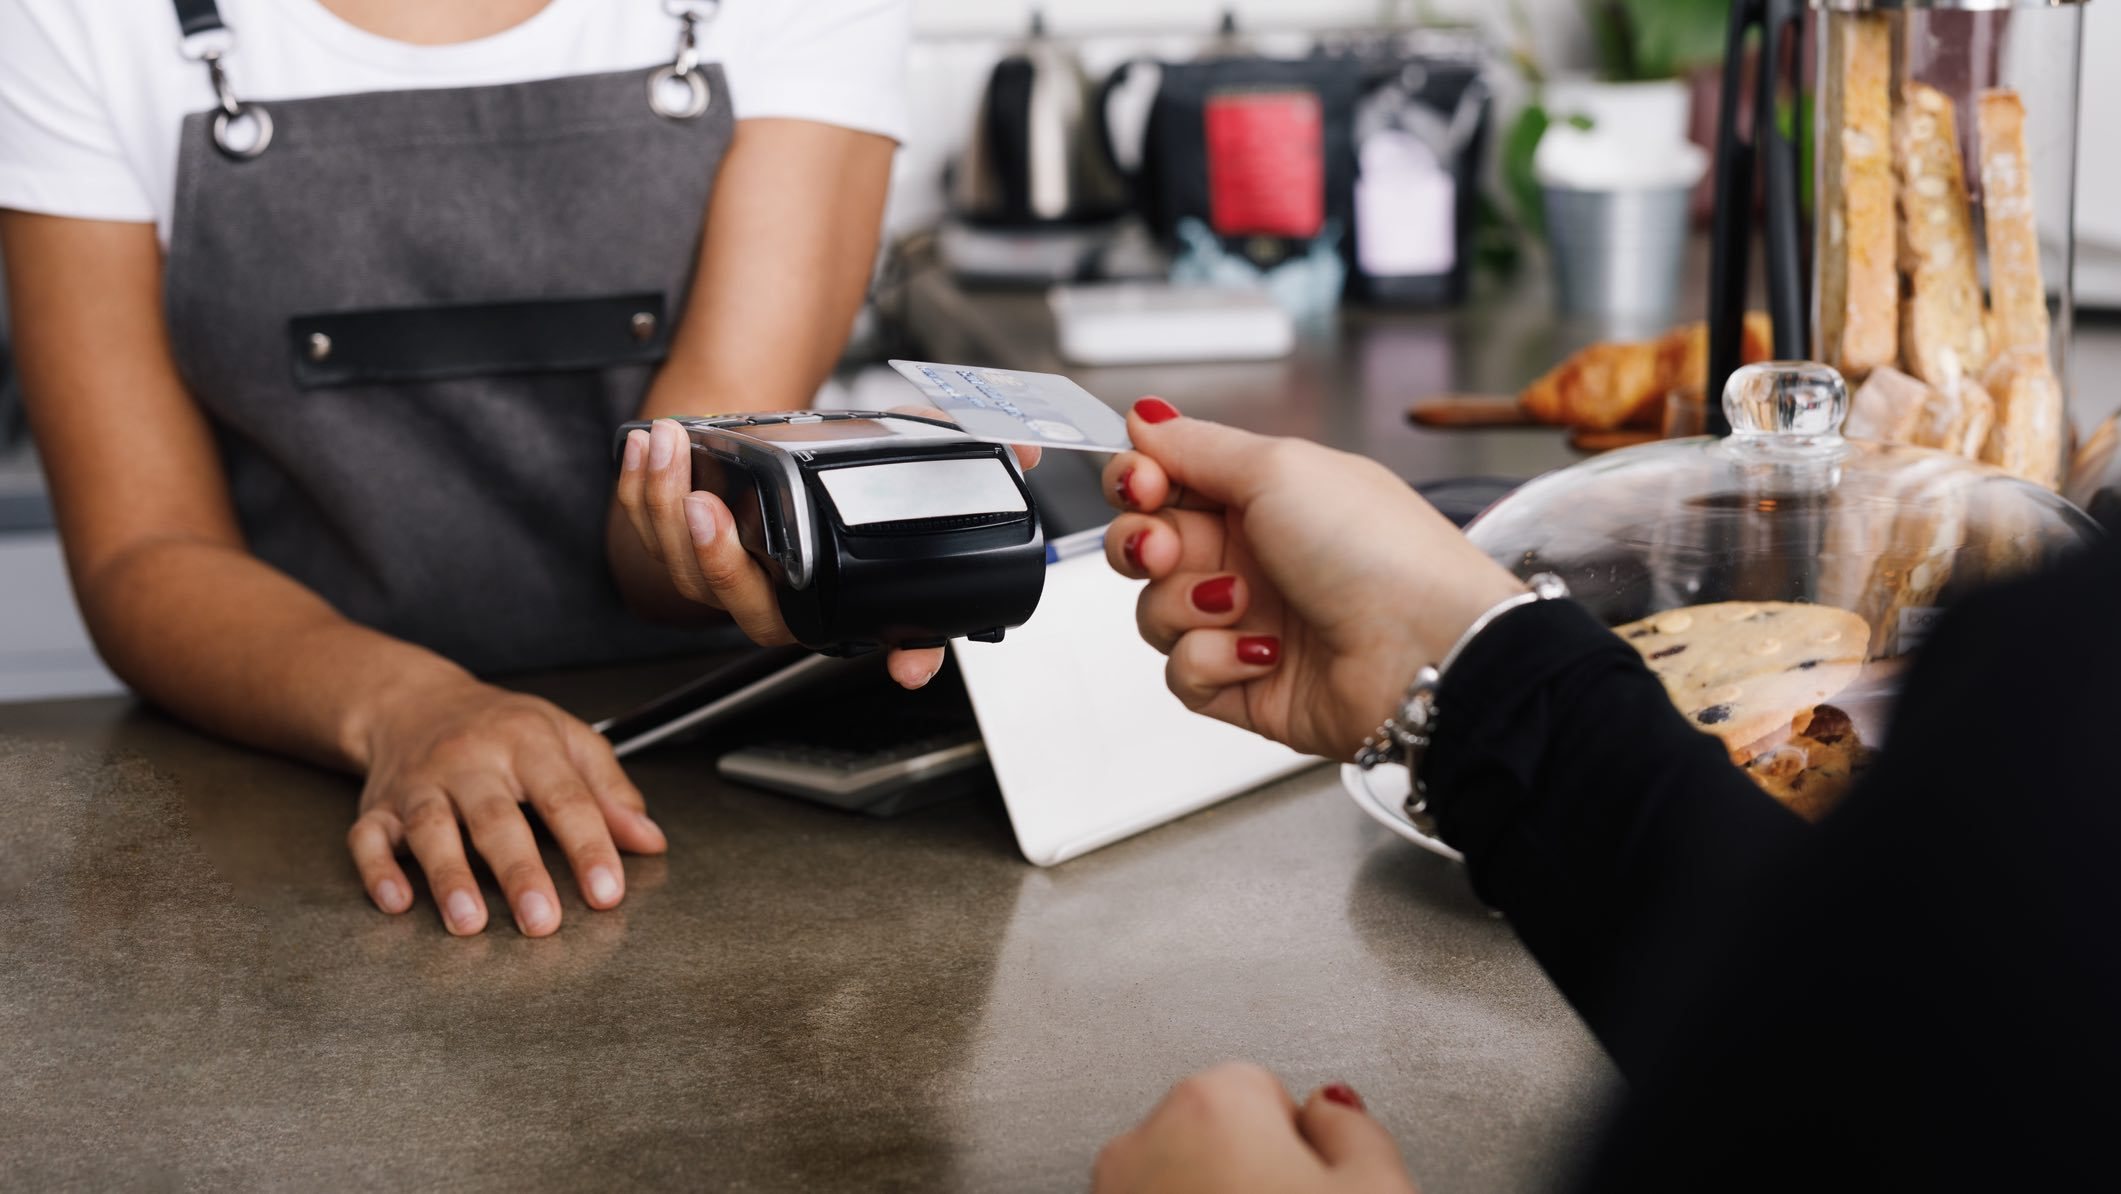 Person paying with card via EFTPOS machine at a cafe.